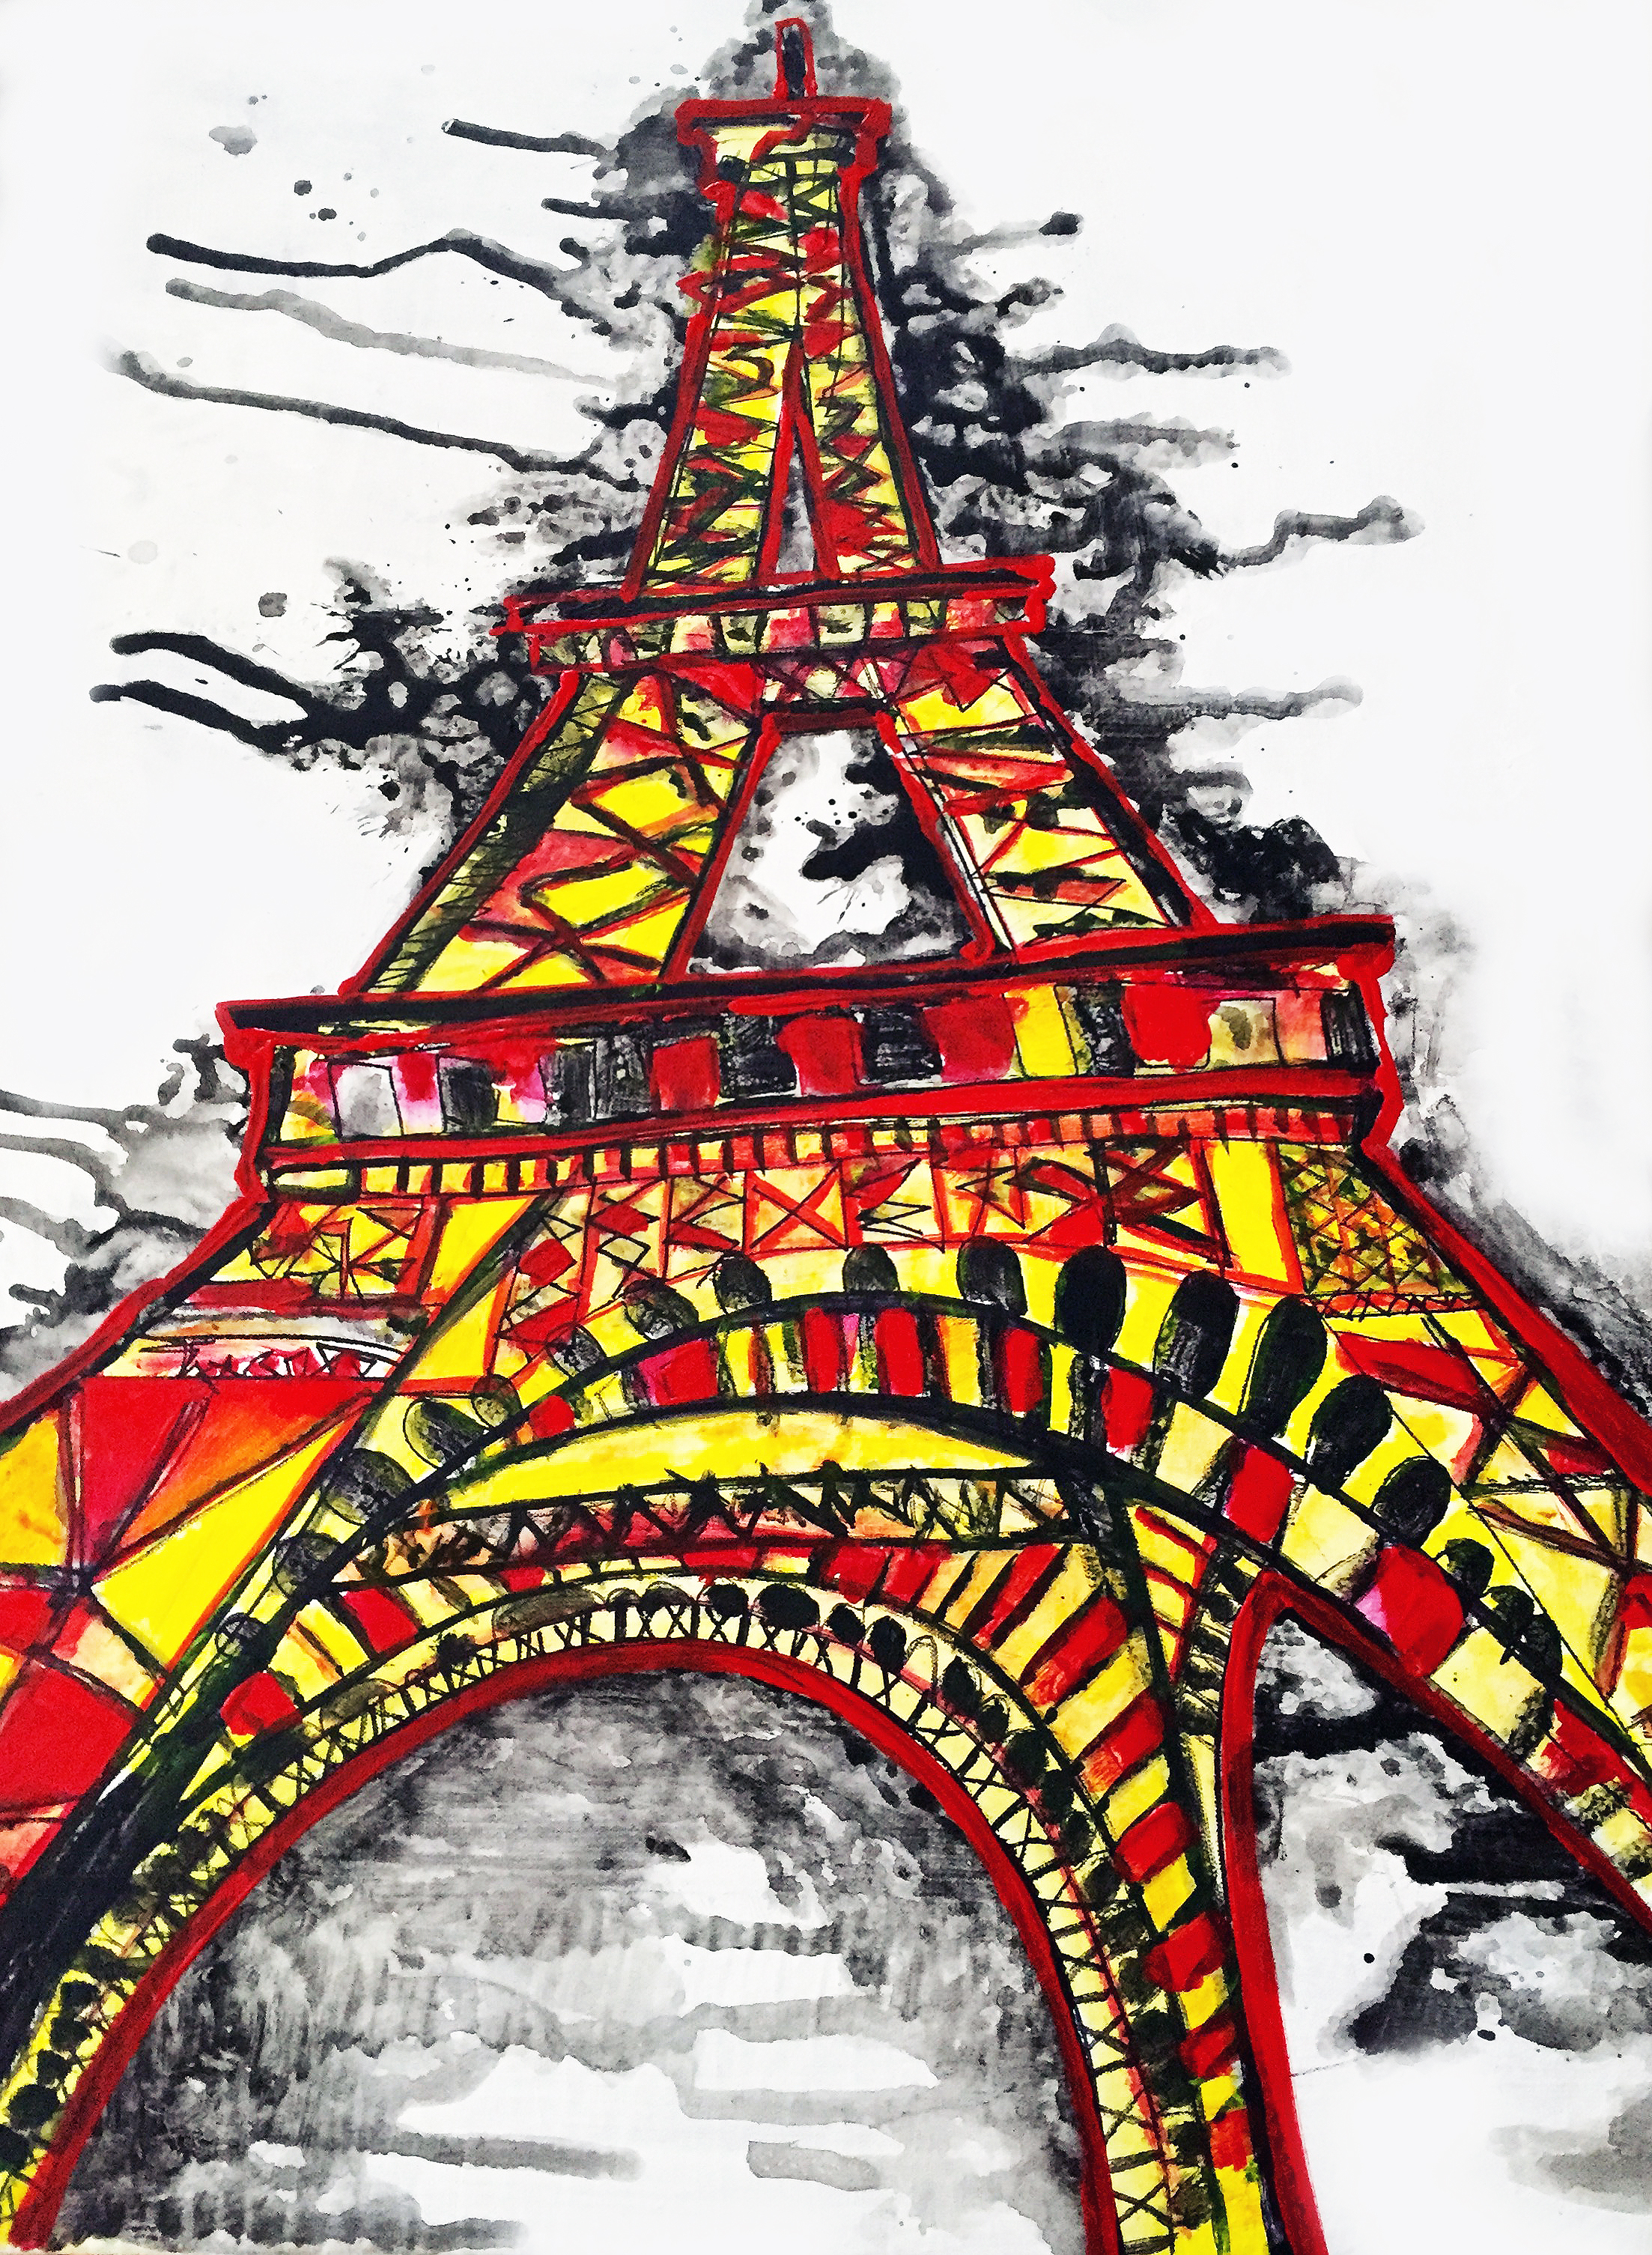 STAND STRONG, PARIS - AUCTIONED OFF FOR THE RED CROSS FOUNDATION FOR THE PARIS ATTACKS